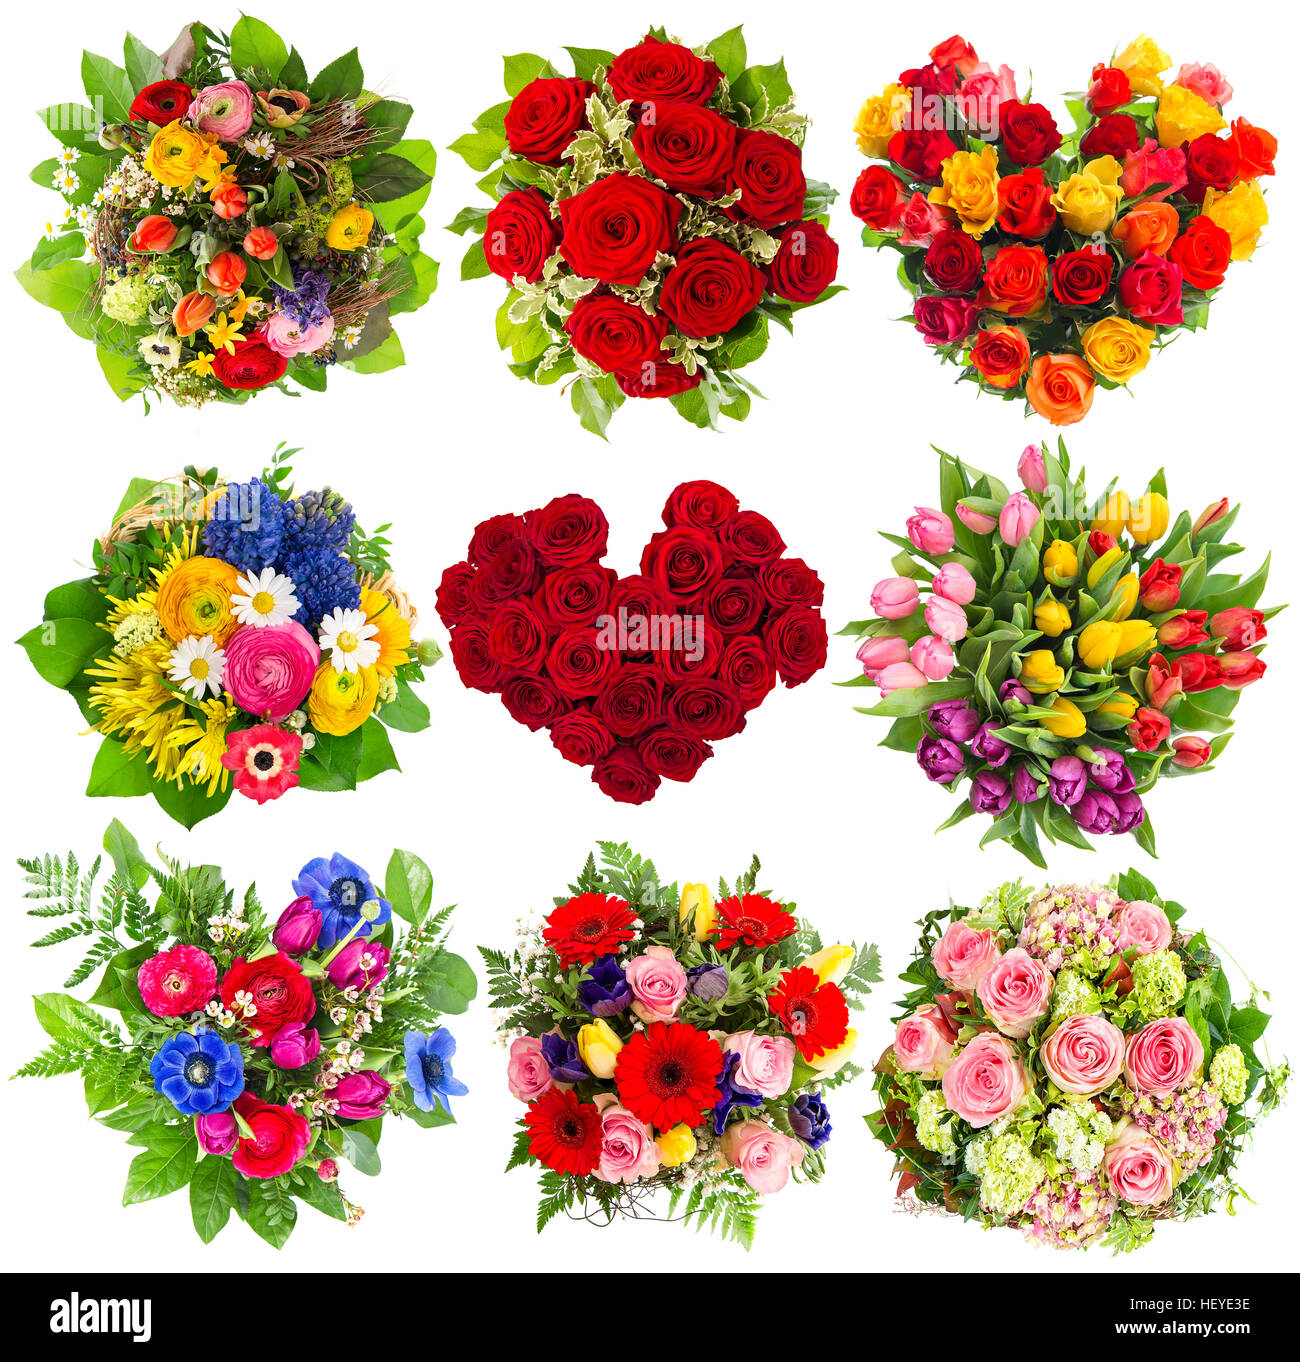 Bouquets of colorful flowers for birthday wedding mothers day bouquets of colorful flowers for birthday wedding mothers day easter holidays red roses izmirmasajfo